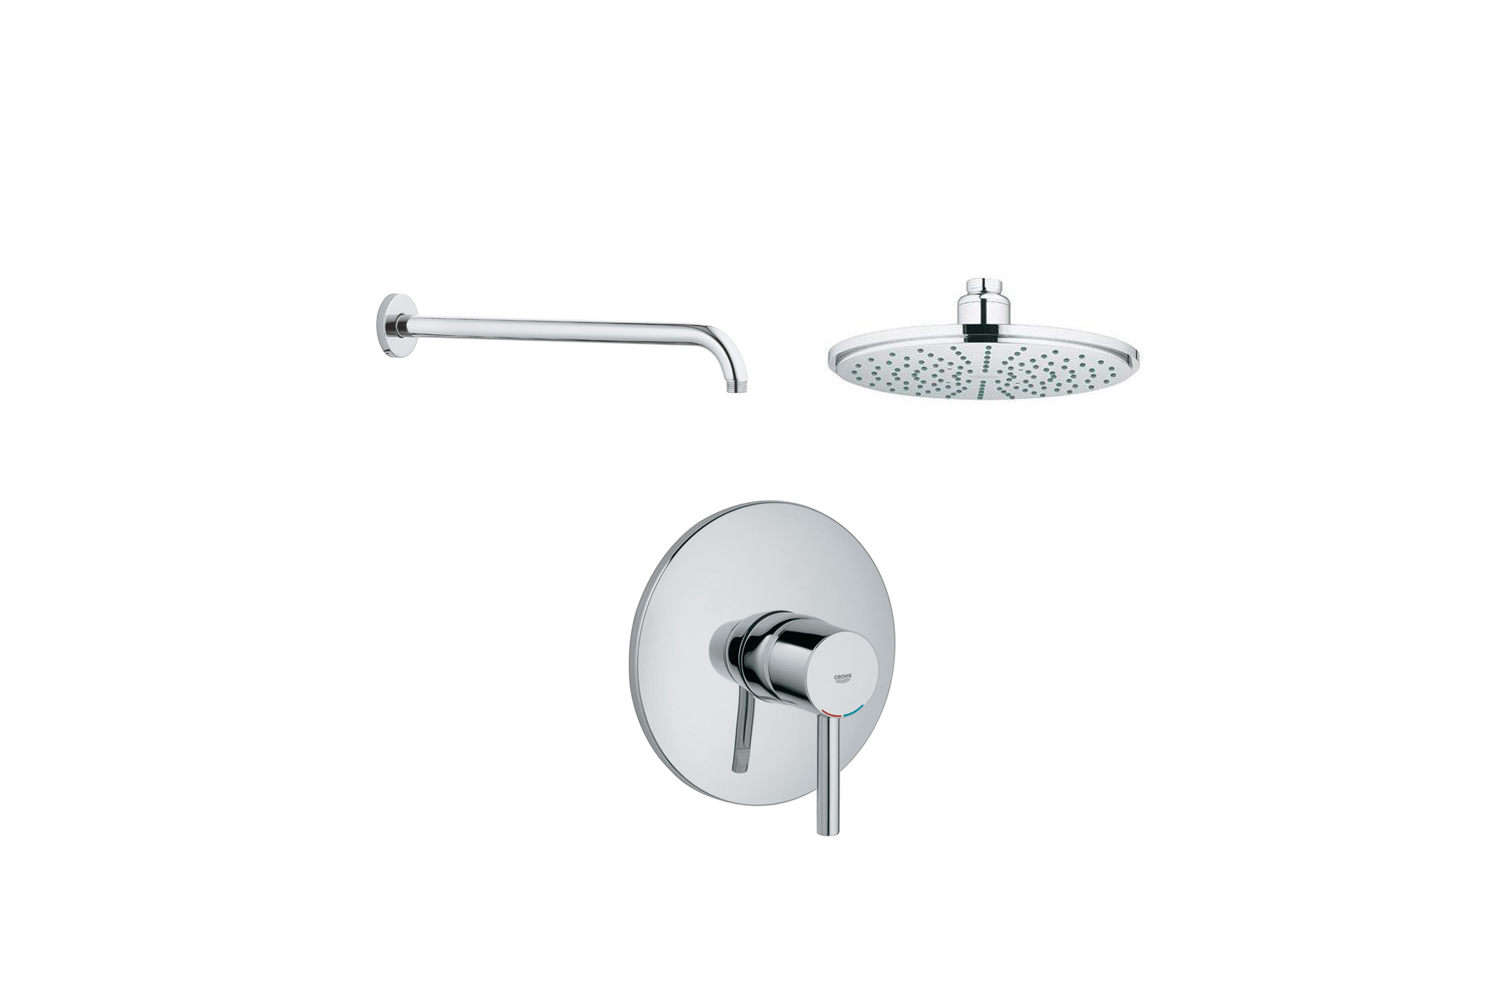 Cary Bernstein favors the Grohe Essence Pressure Balance Valve Faucet ($loading=